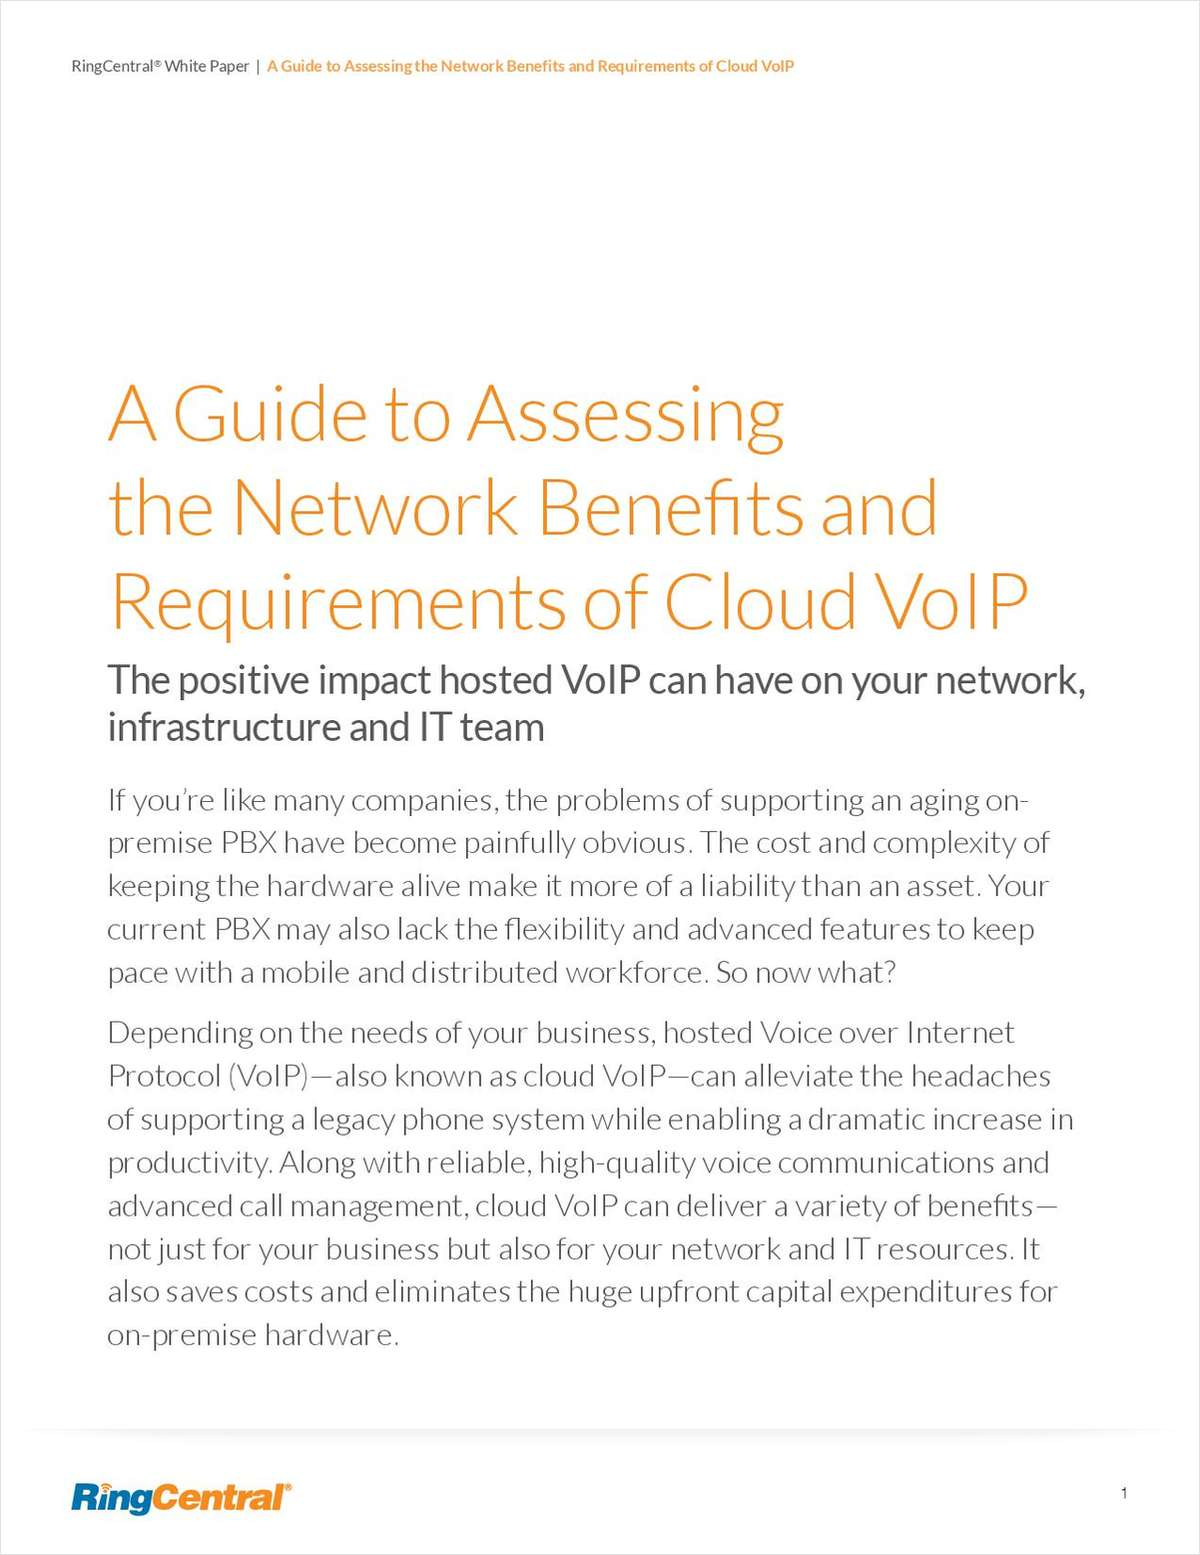 A Guide to Assessing the Network Benefits and Requirements of Cloud VoIP